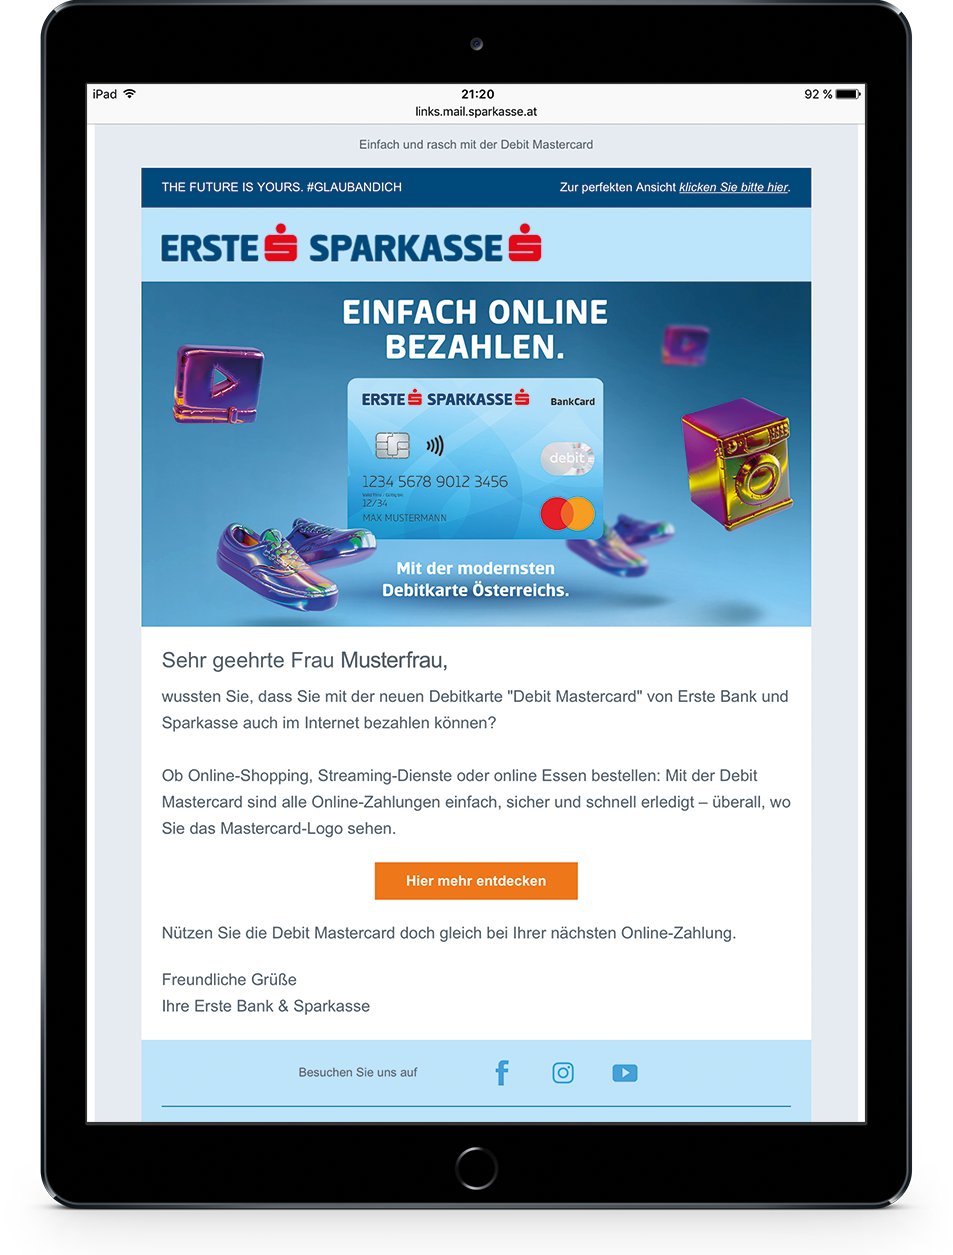 iPad_DMC_Newsletter